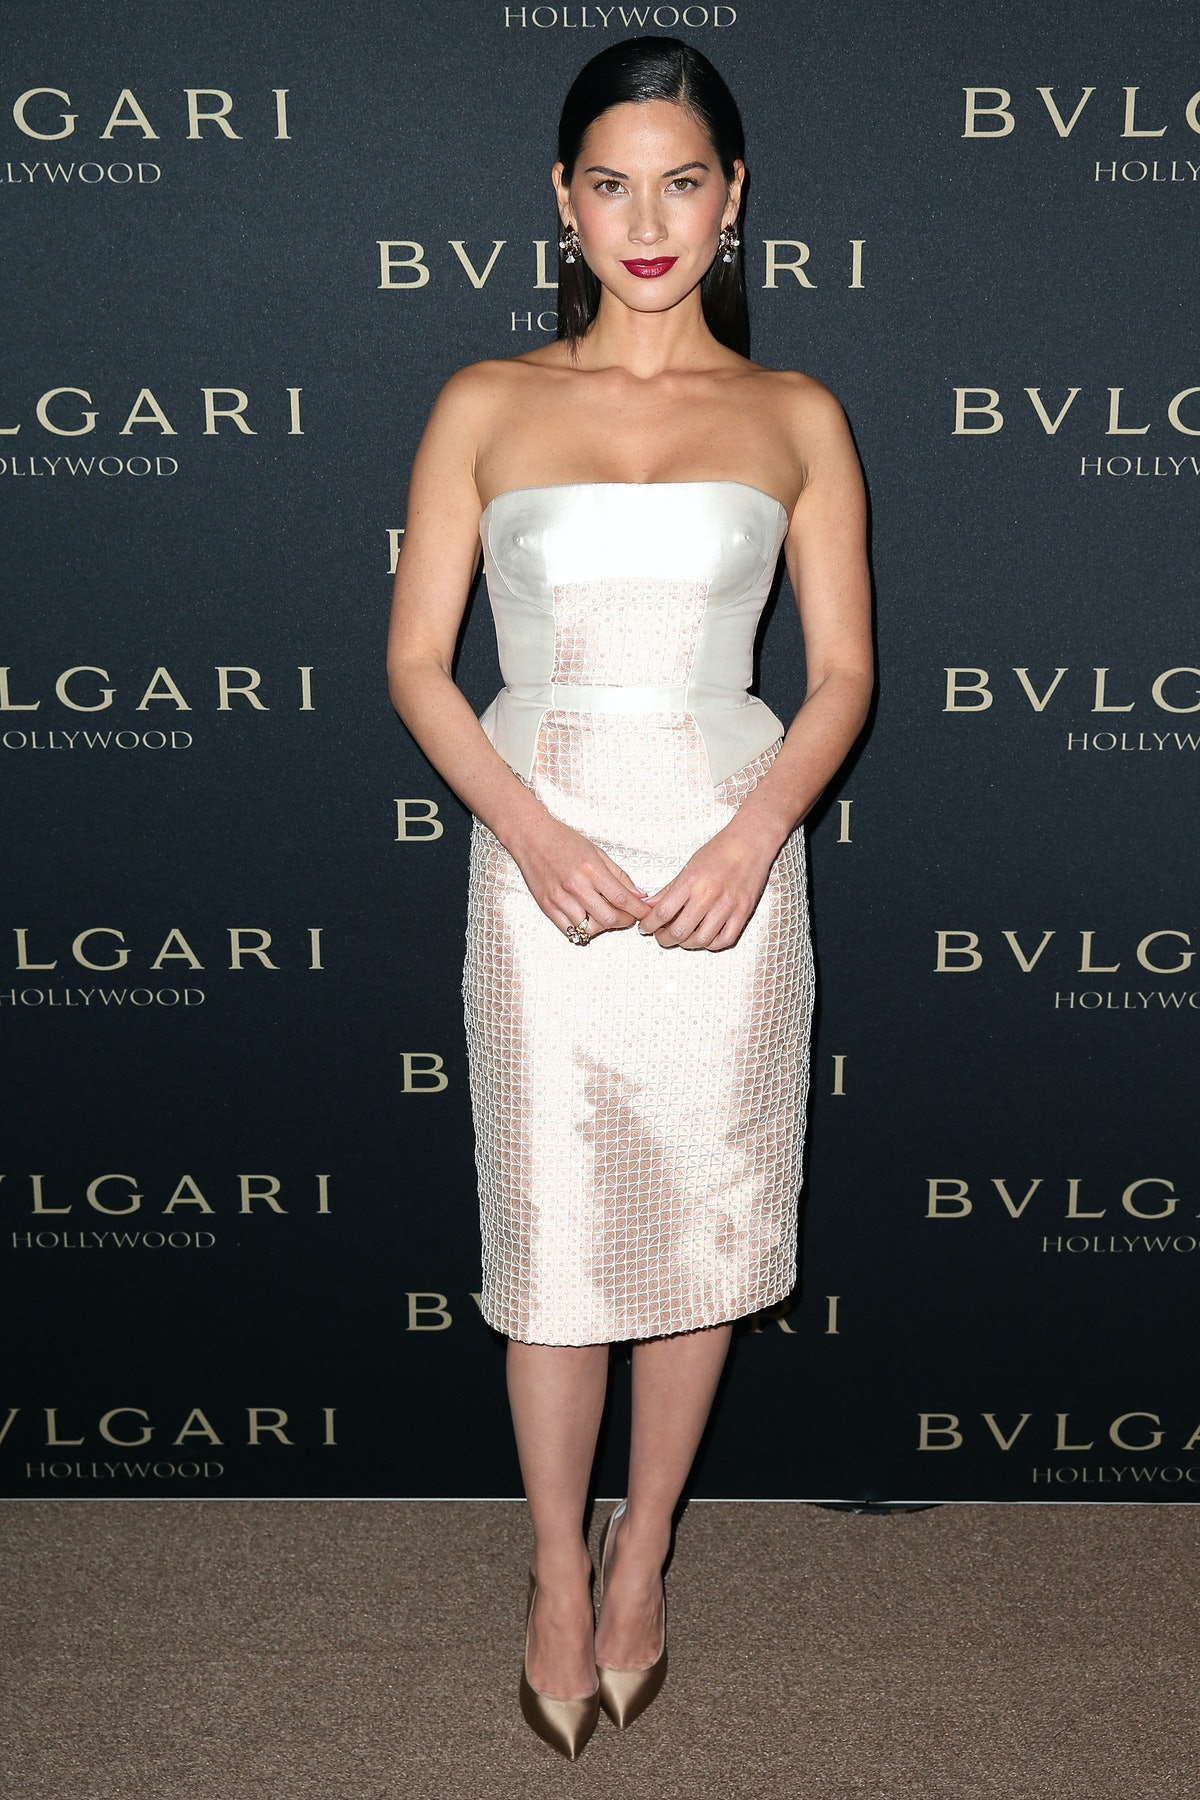 """BVLGARI """"Decades Of Glamour"""" Oscar Party Hosted By Naomi Watts - Arrivals"""